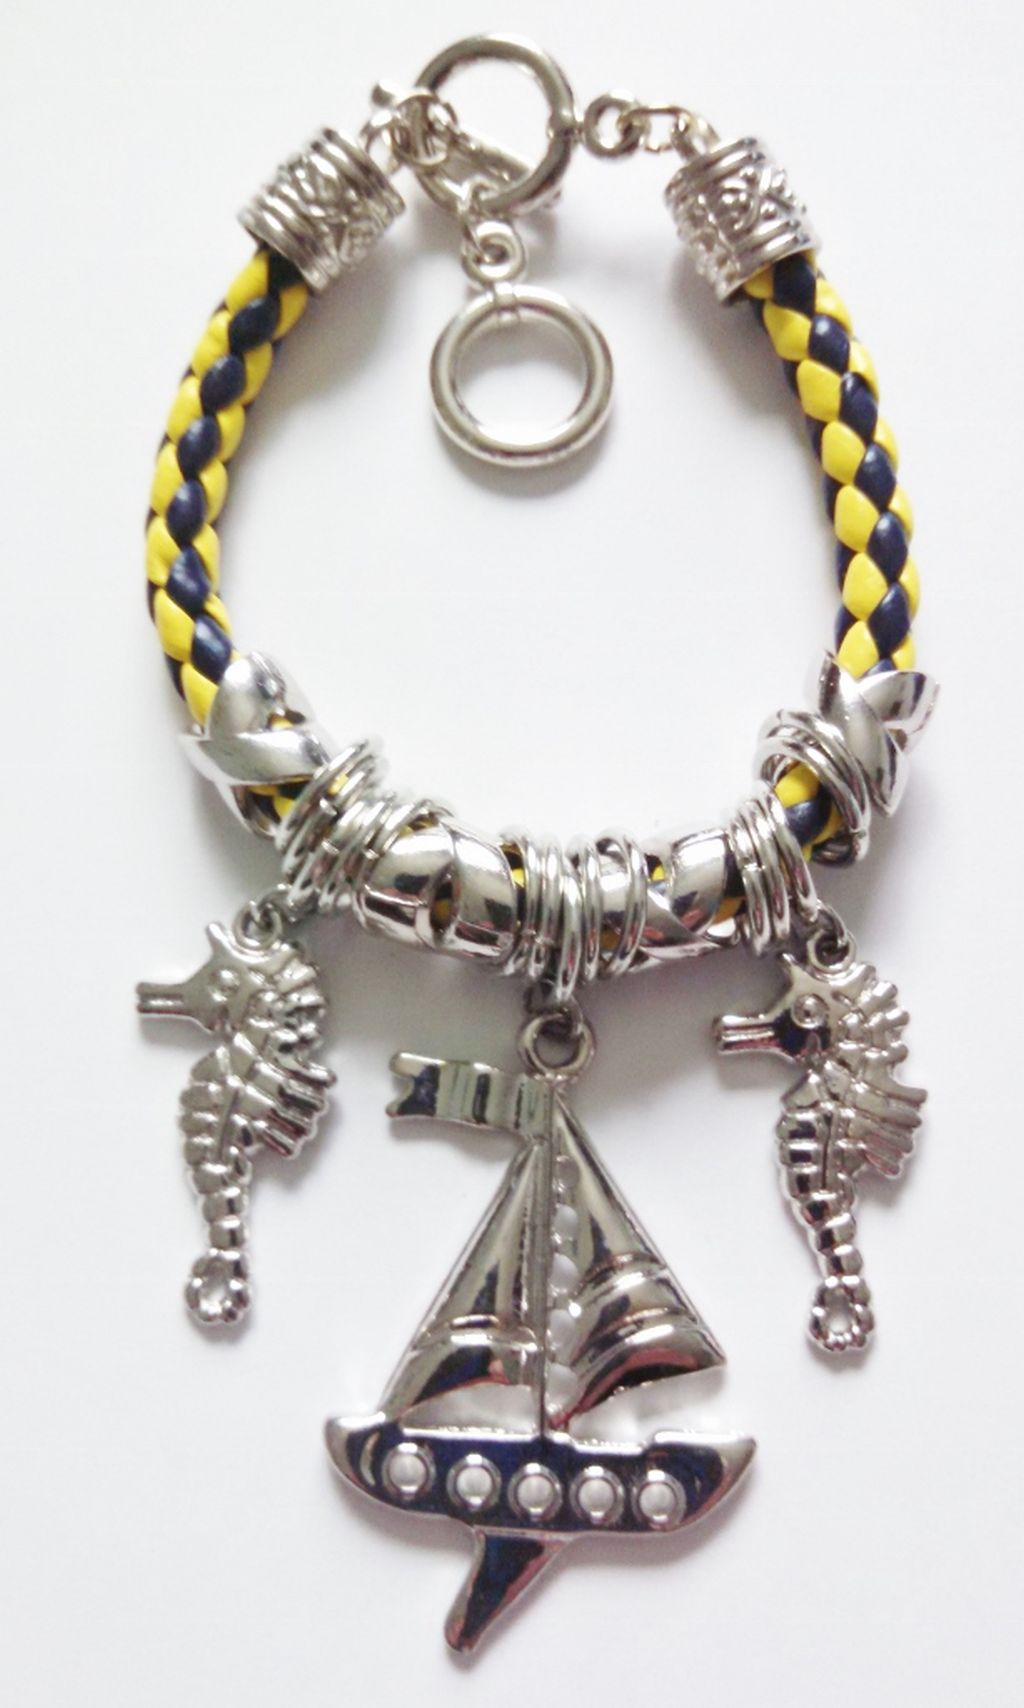 Silver Ship/Yacht & Seahorse Sailing Charm Bracelet, Nautical Jewelry Blue/Yellow